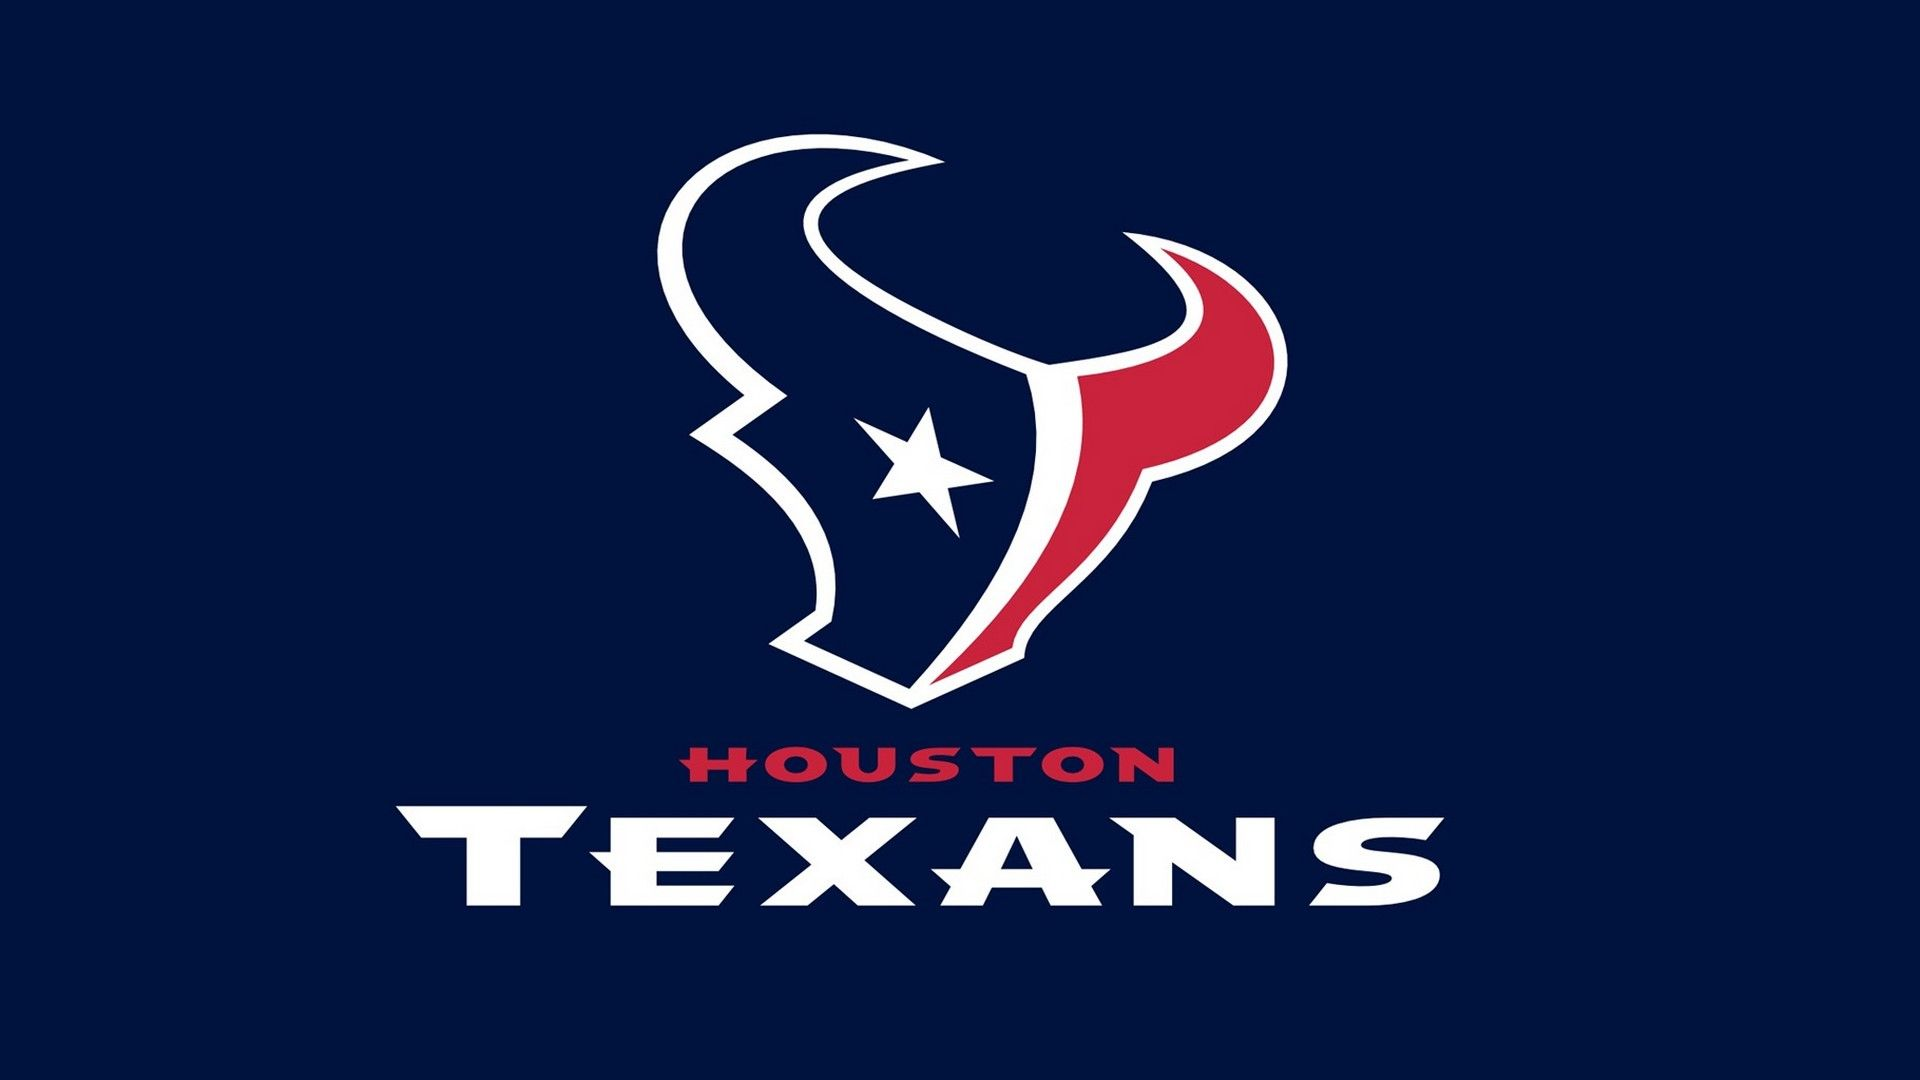 Houston Texans Wallpaper HD Wallpapers Houston texans logo 1920x1080